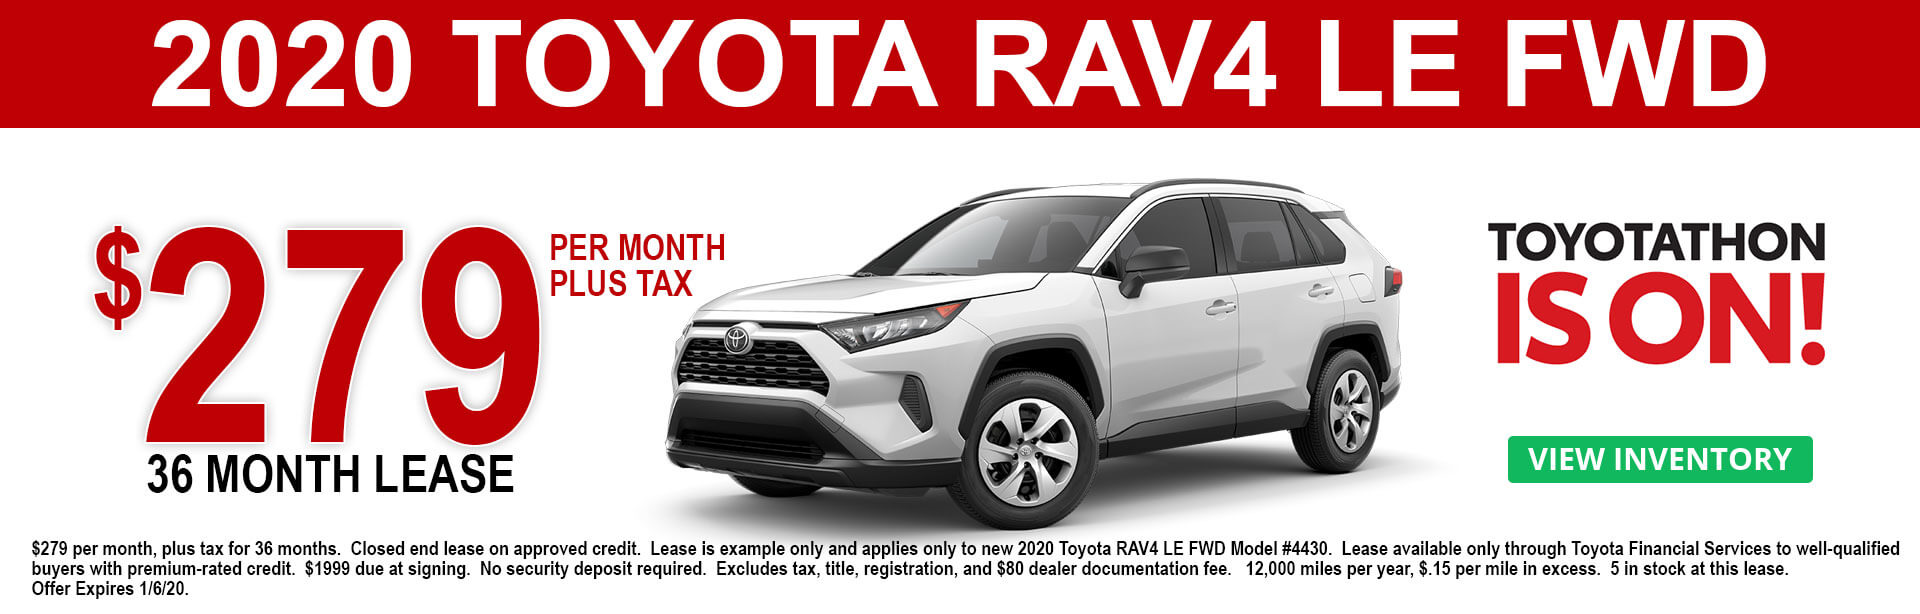 2020 Toyota RAV4 LE Lease Offer $279 per month 36 months